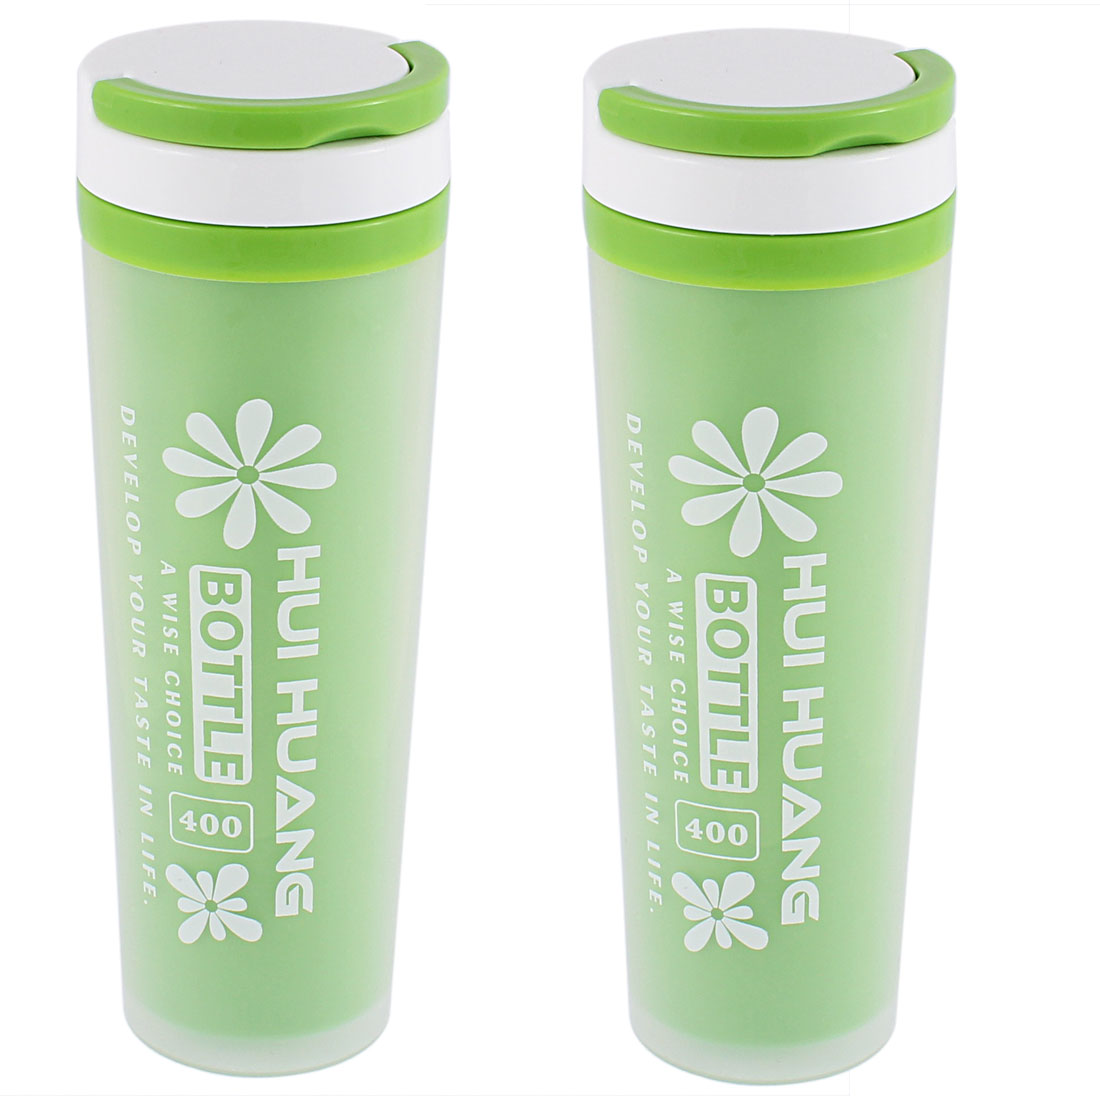 Water Tea Insulated Heat Retaining Bottle Cup Mug Vacuum Flask 400ml Green 2pcs